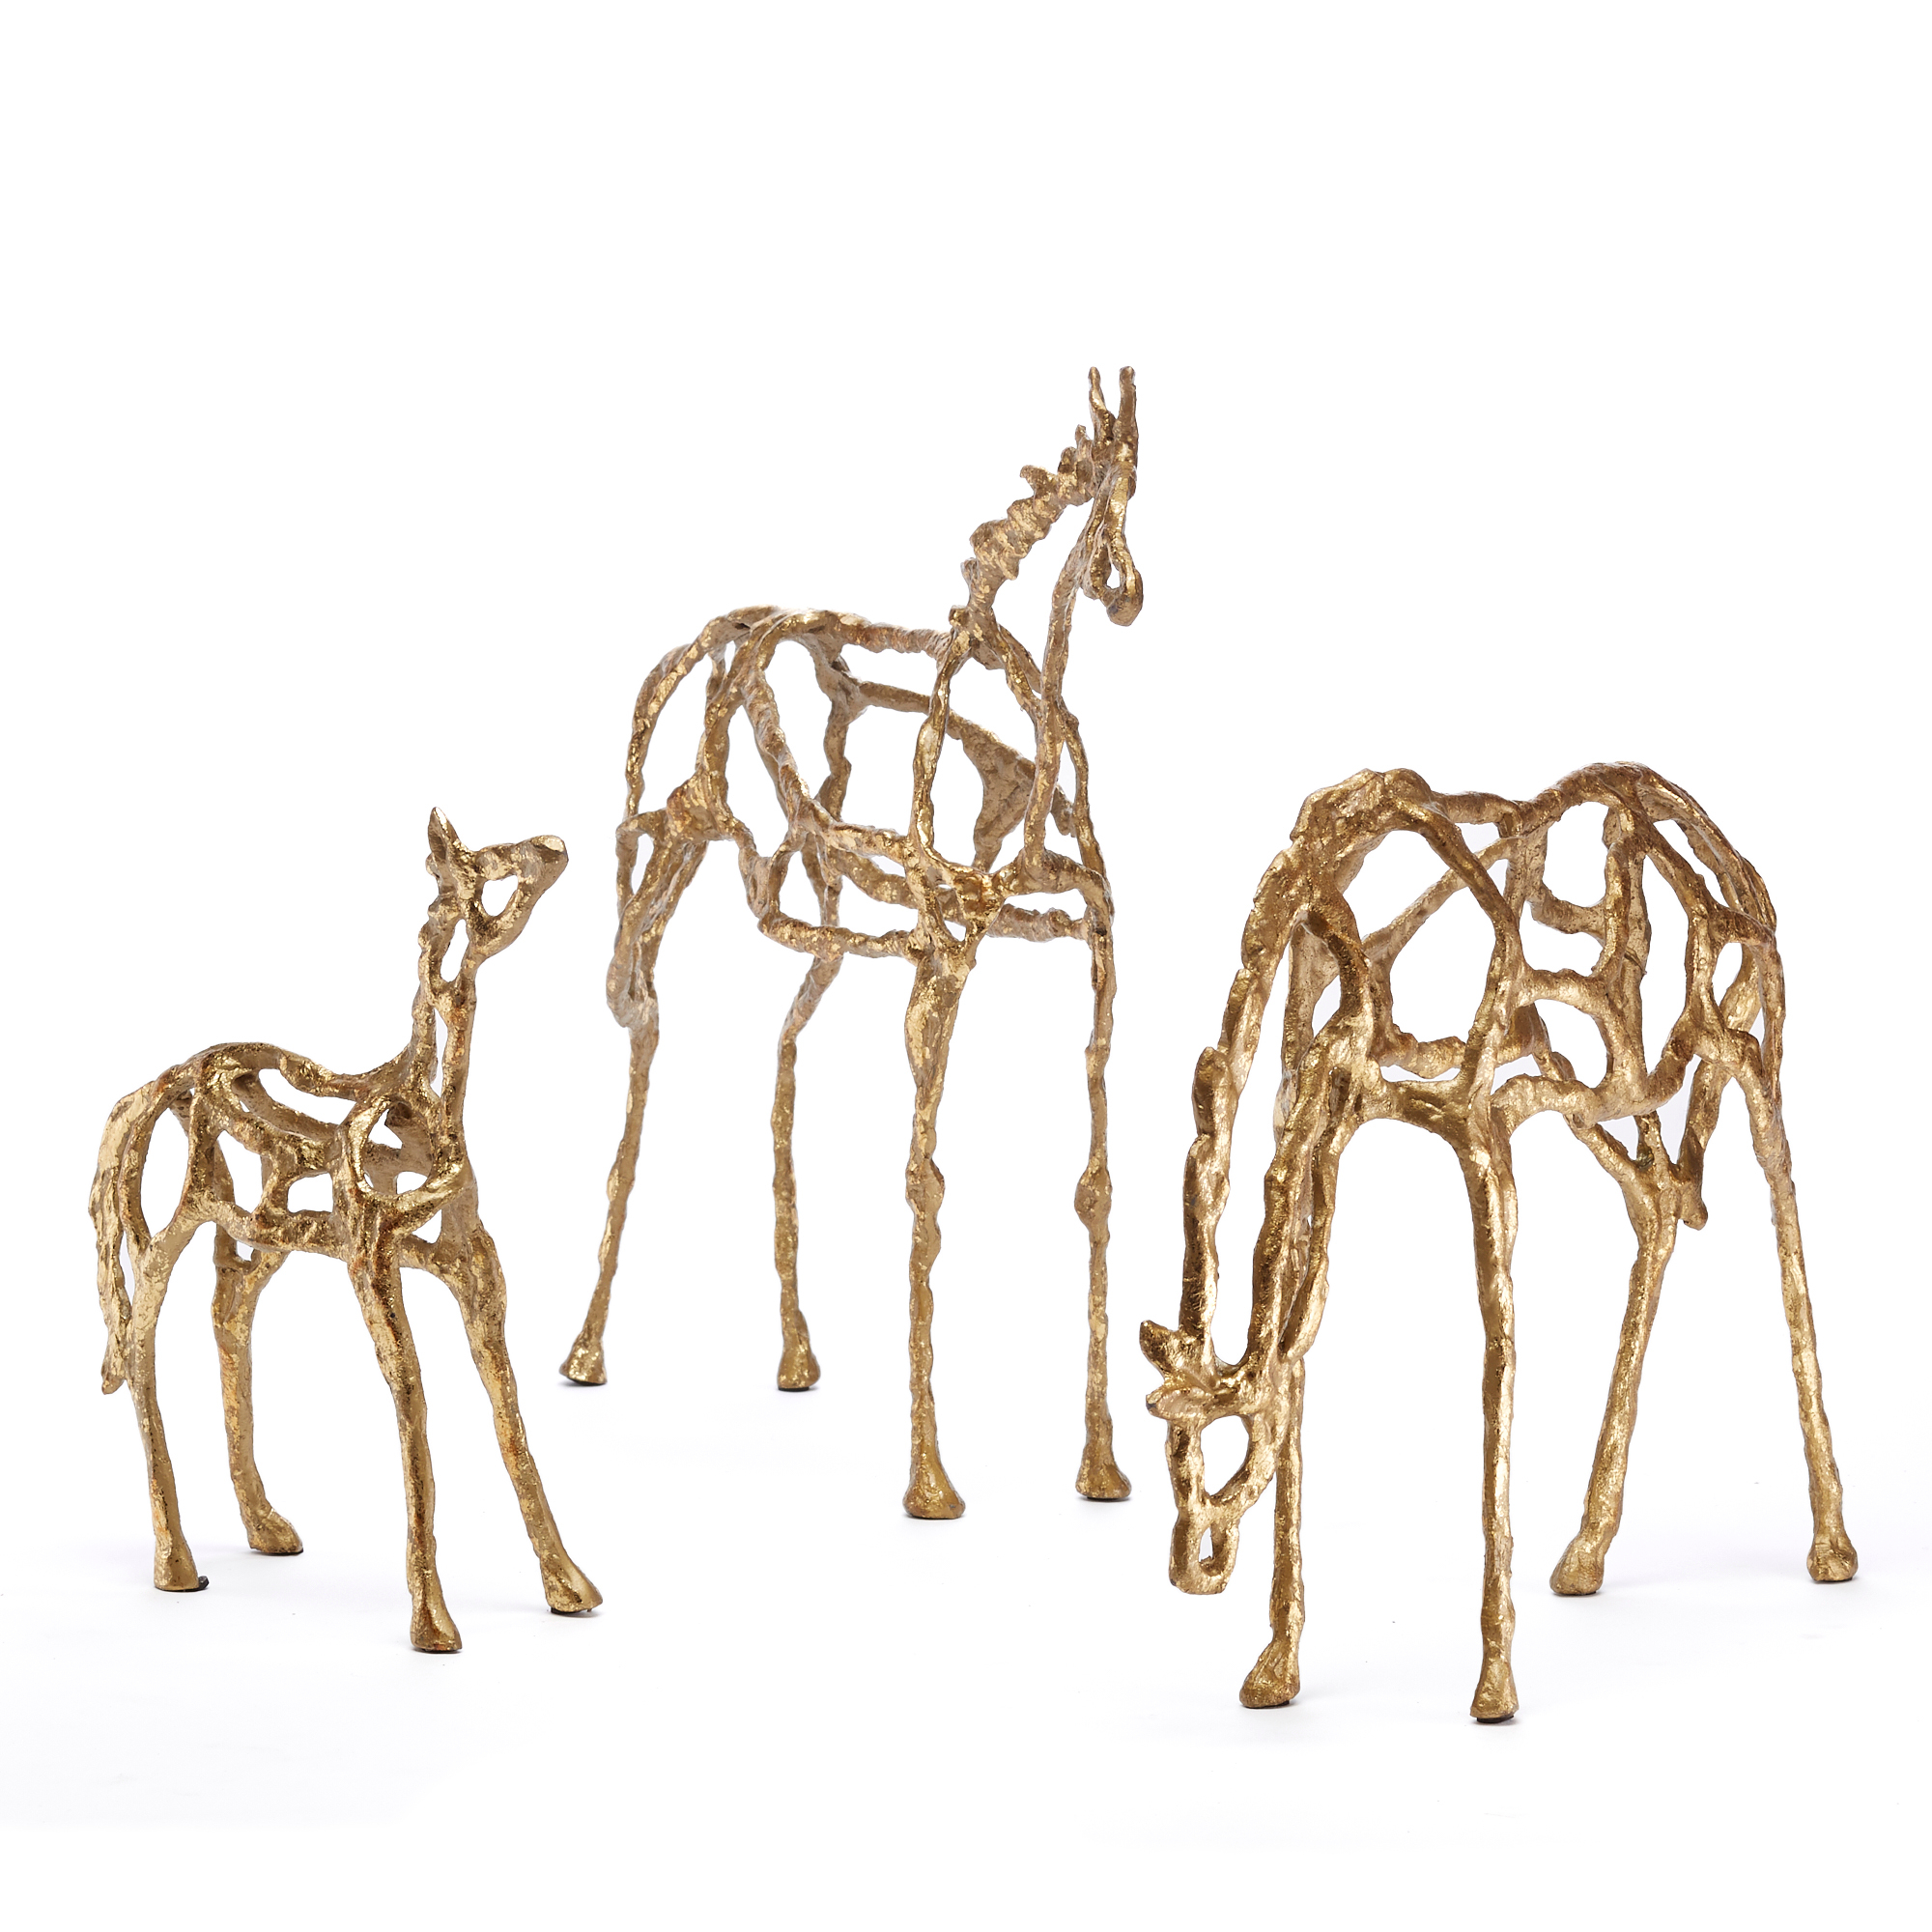 Golden Iron Horse Sculptures